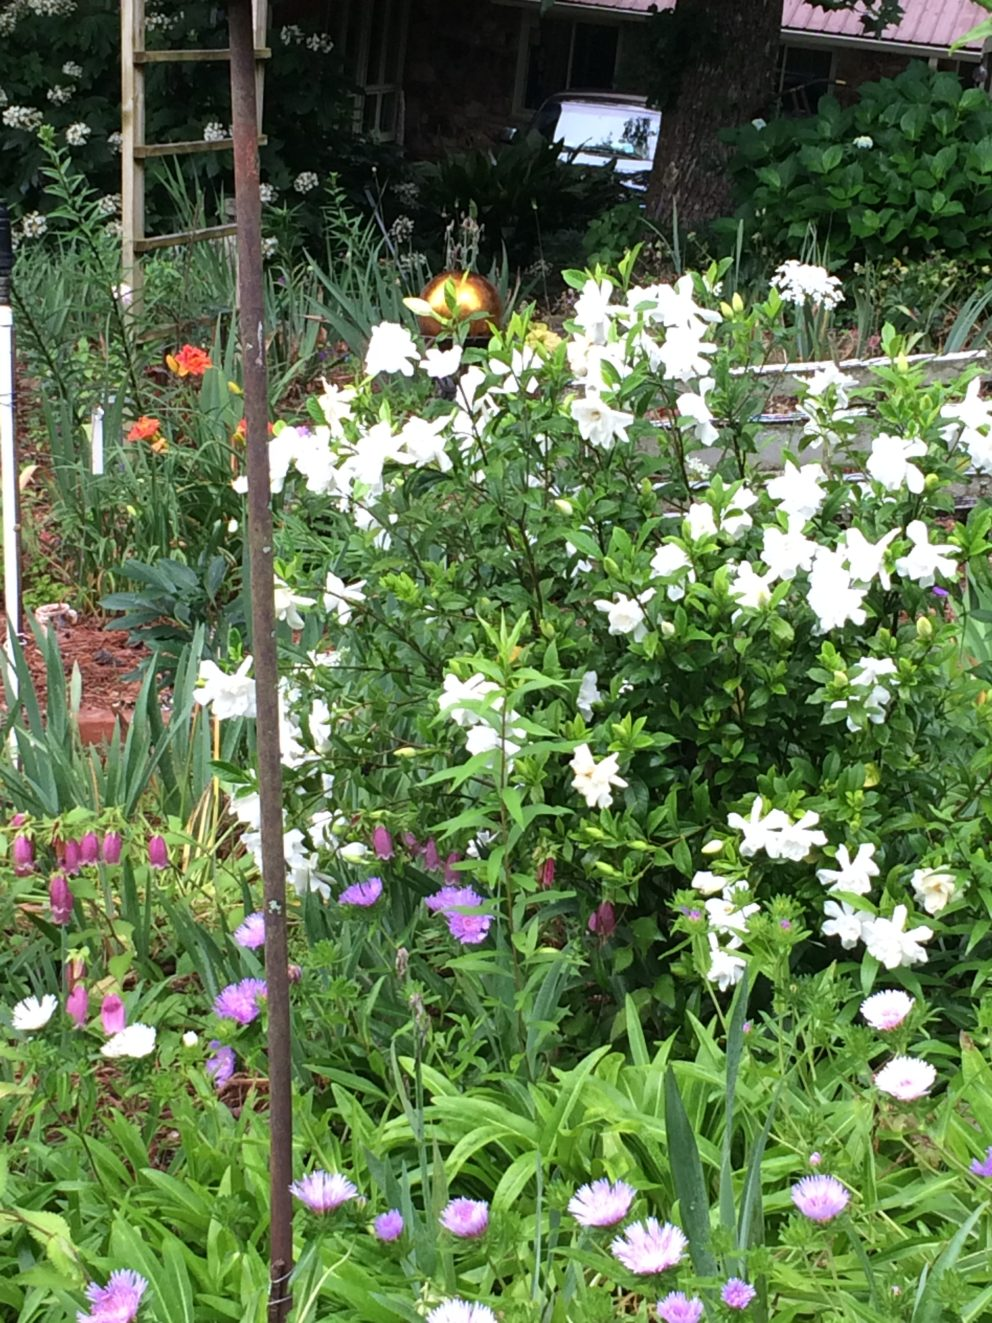 Companion plants at the Simonton Bridge Daylily Farm